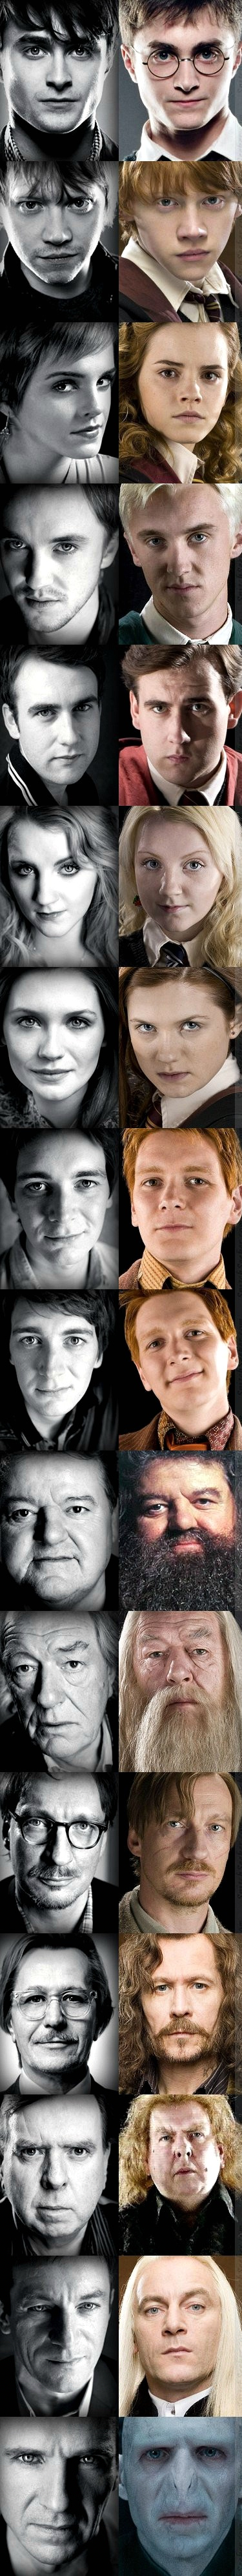 Vanna, Weasly's, Draco, Harry Dumbledor, Hagrid and Petegrew look most alike